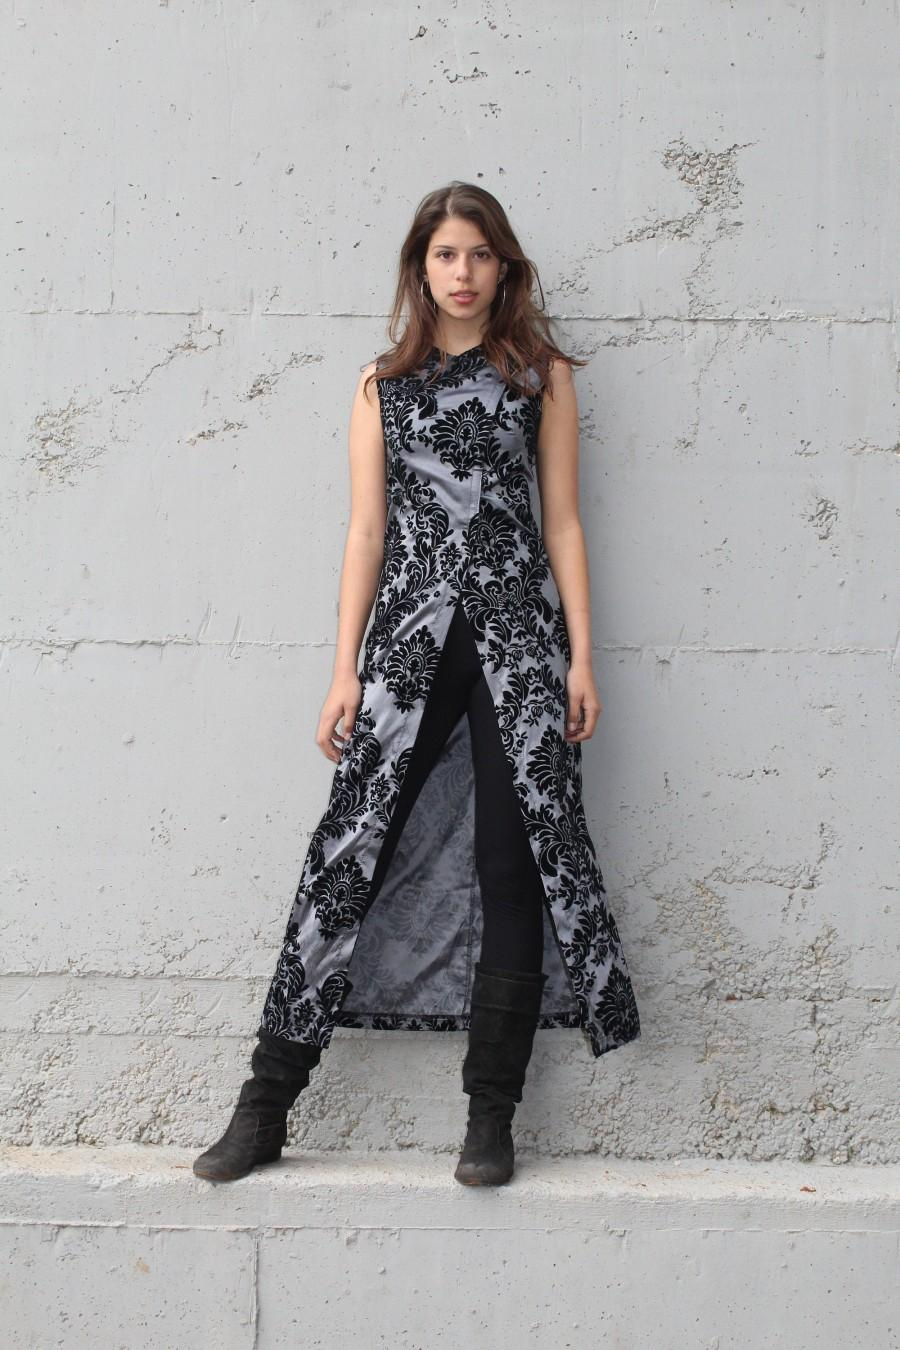 Mariage - Tailored Black and Silver Evening Tunic Dress, Chinese Style Maxi Dress, Mother of Groom or Bride Suit, Women Special Occasion Dress